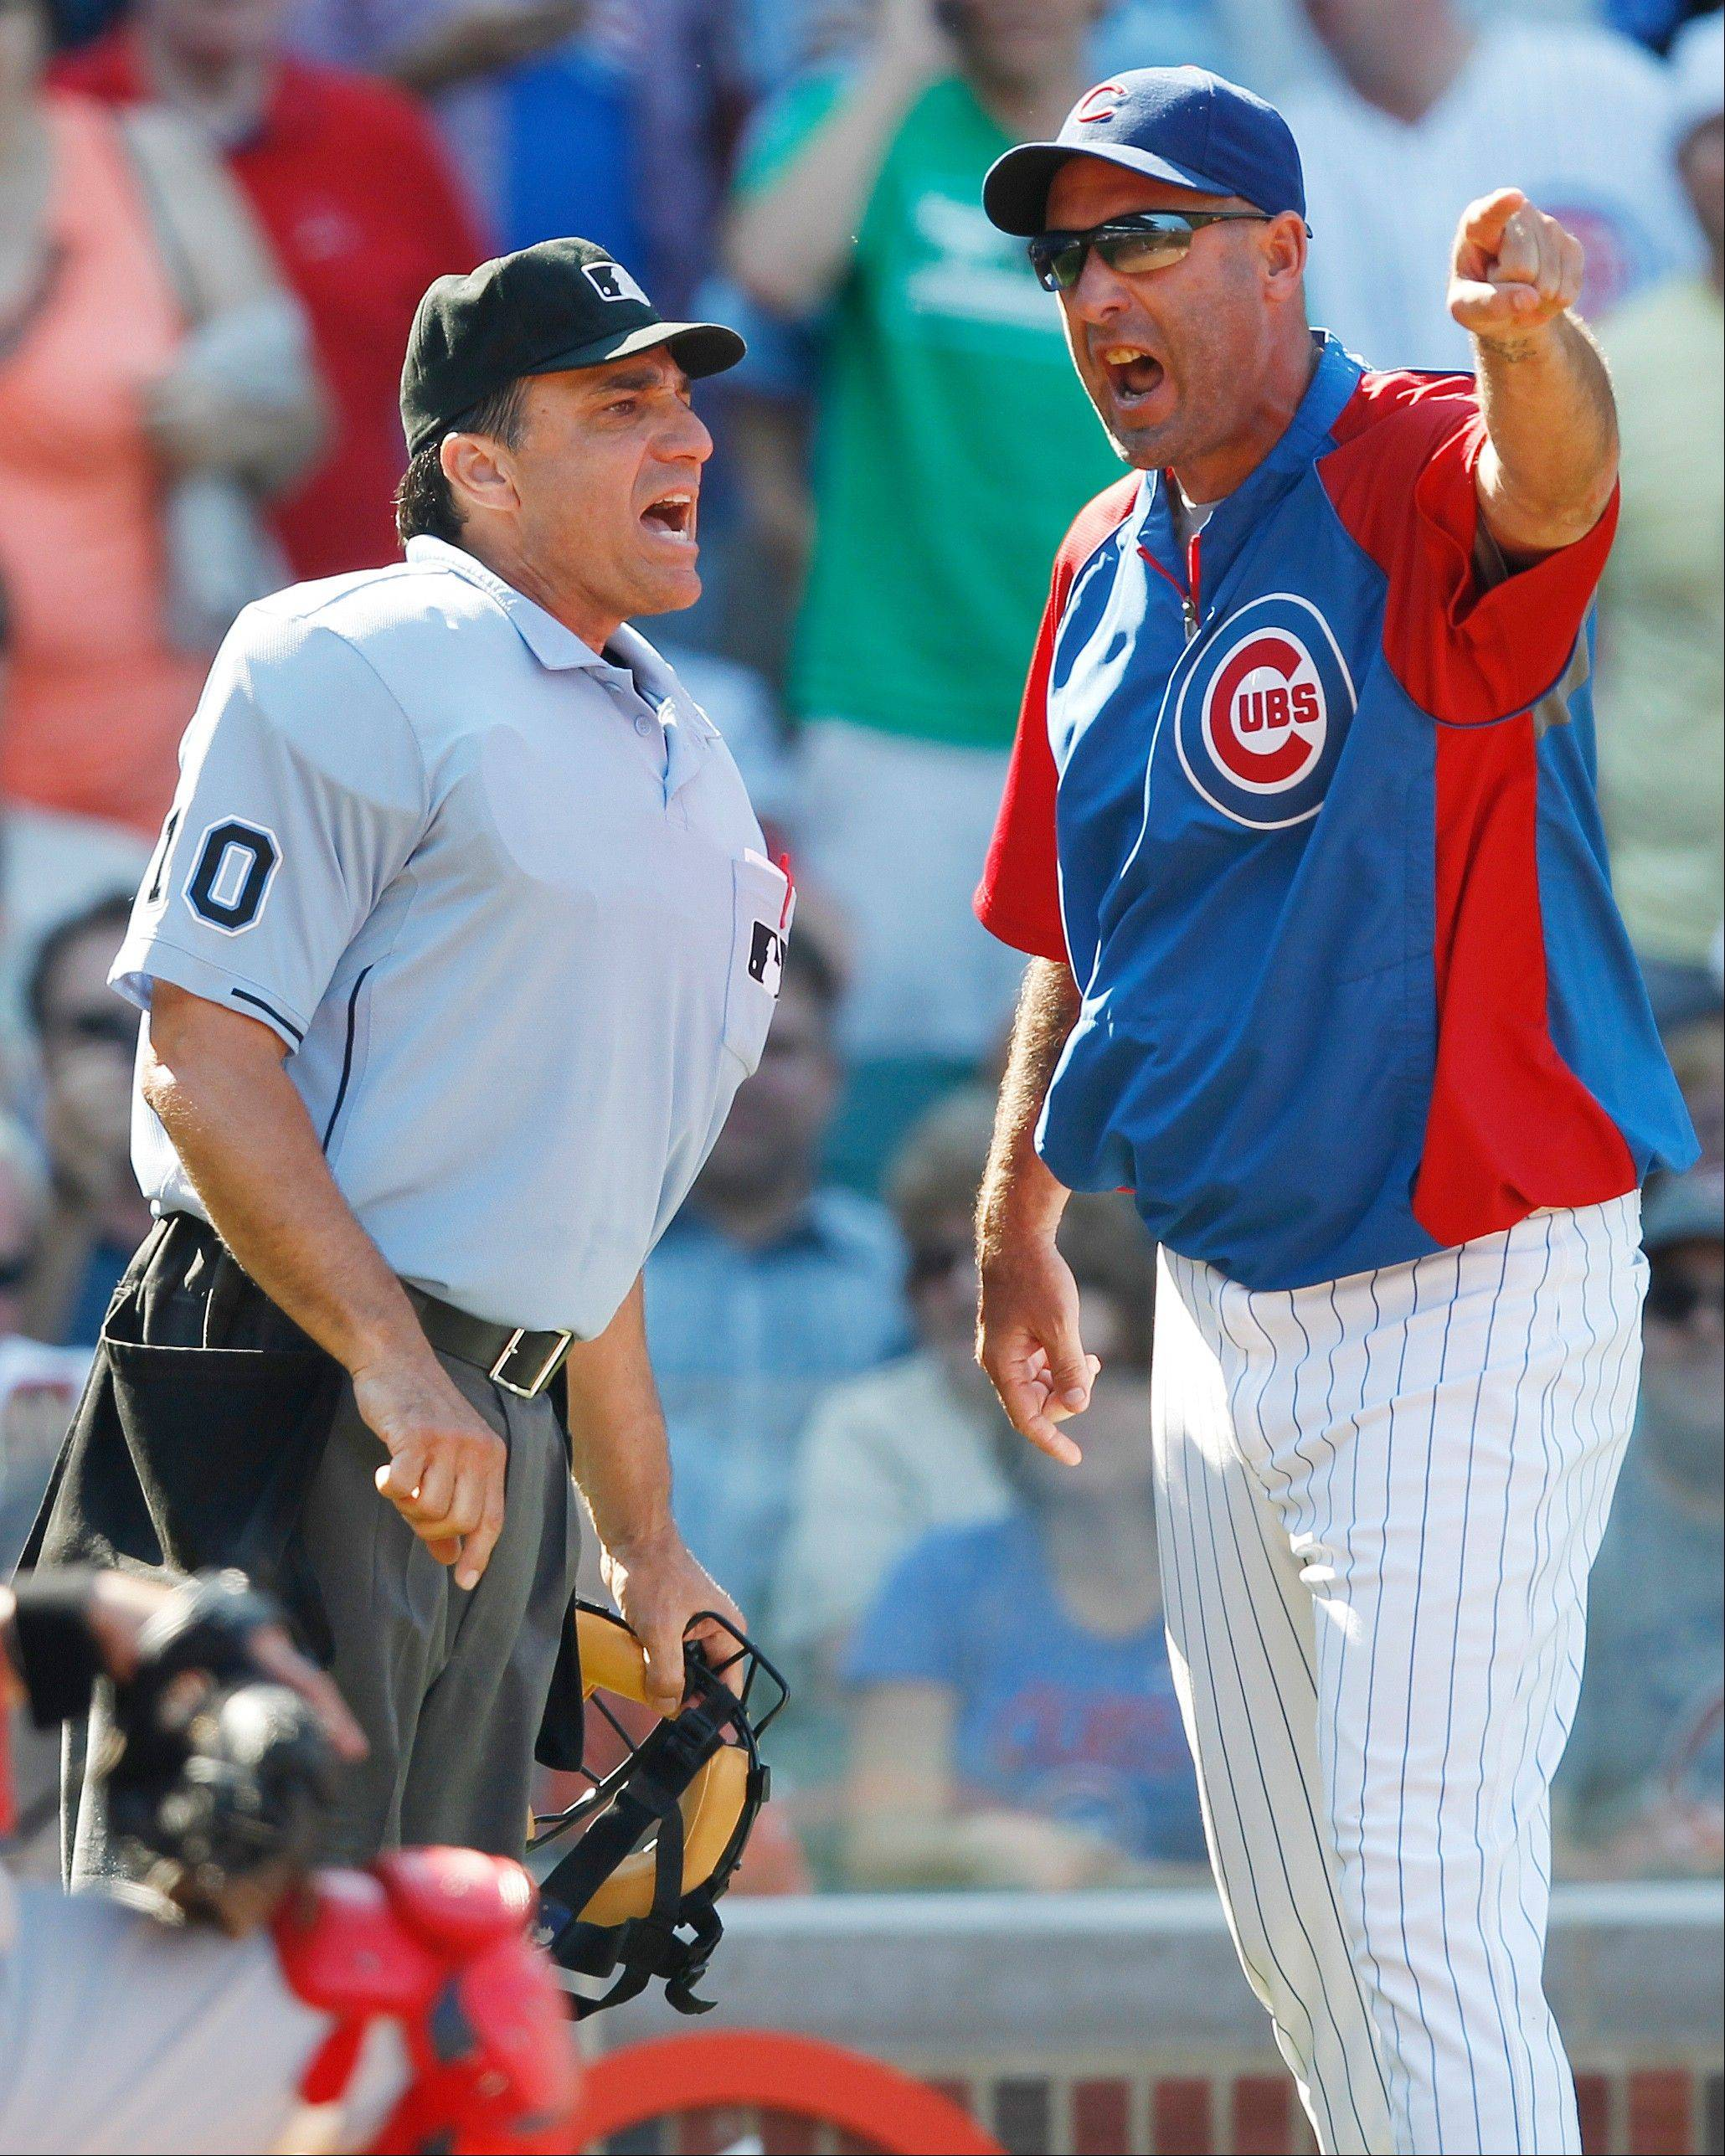 Cubs manager Dale Sveum argues with plate umpire Phil Cuzzi after the Cubs� Donnie Murphy was called out on a checked swing in the seventh inning. Sveum was ejected from the game.